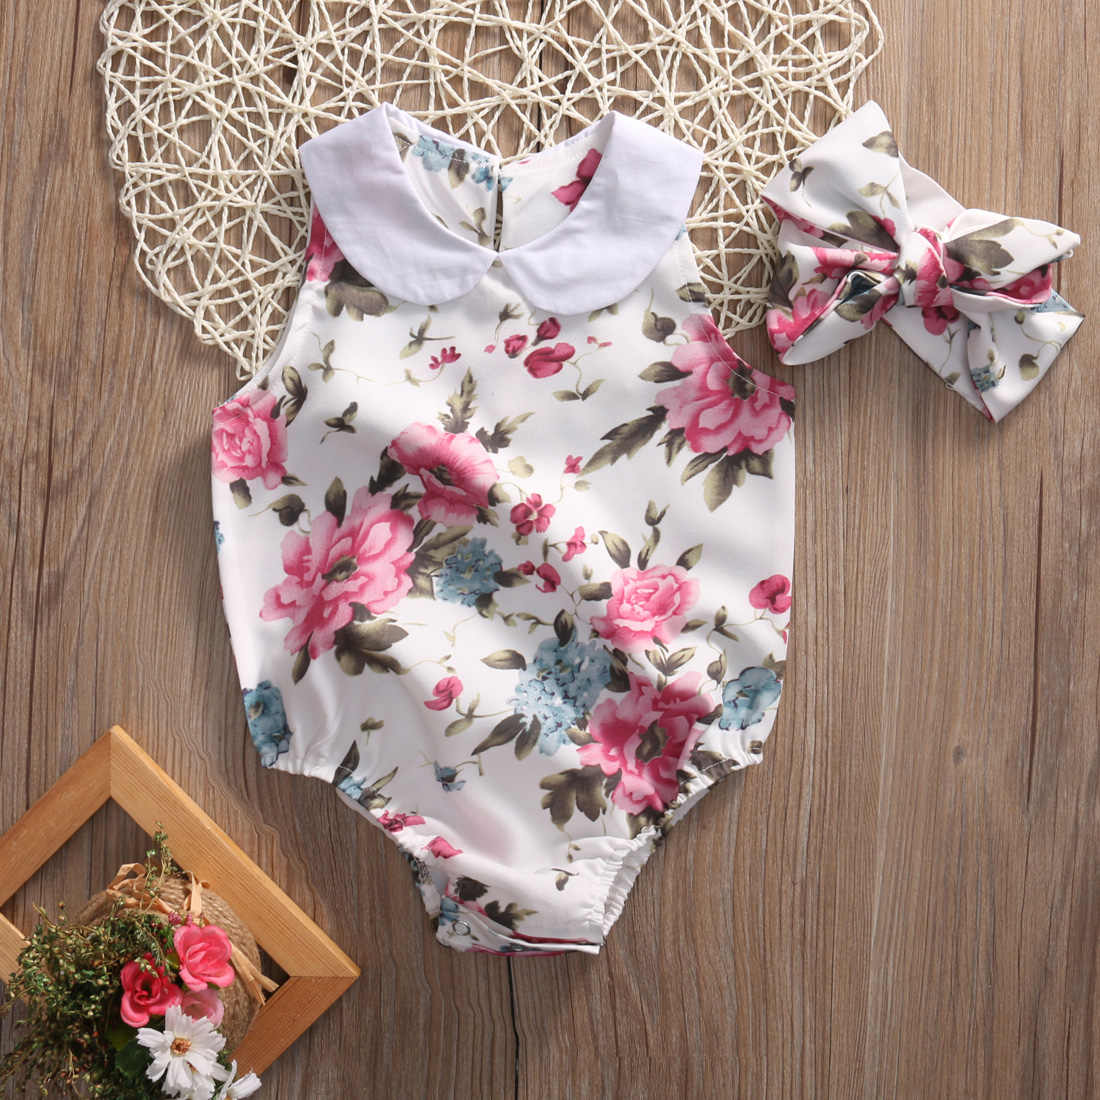 2d27229fe73c9 Detail Feedback Questions about 2PCS Set Newborn Floral Baby Girl ...